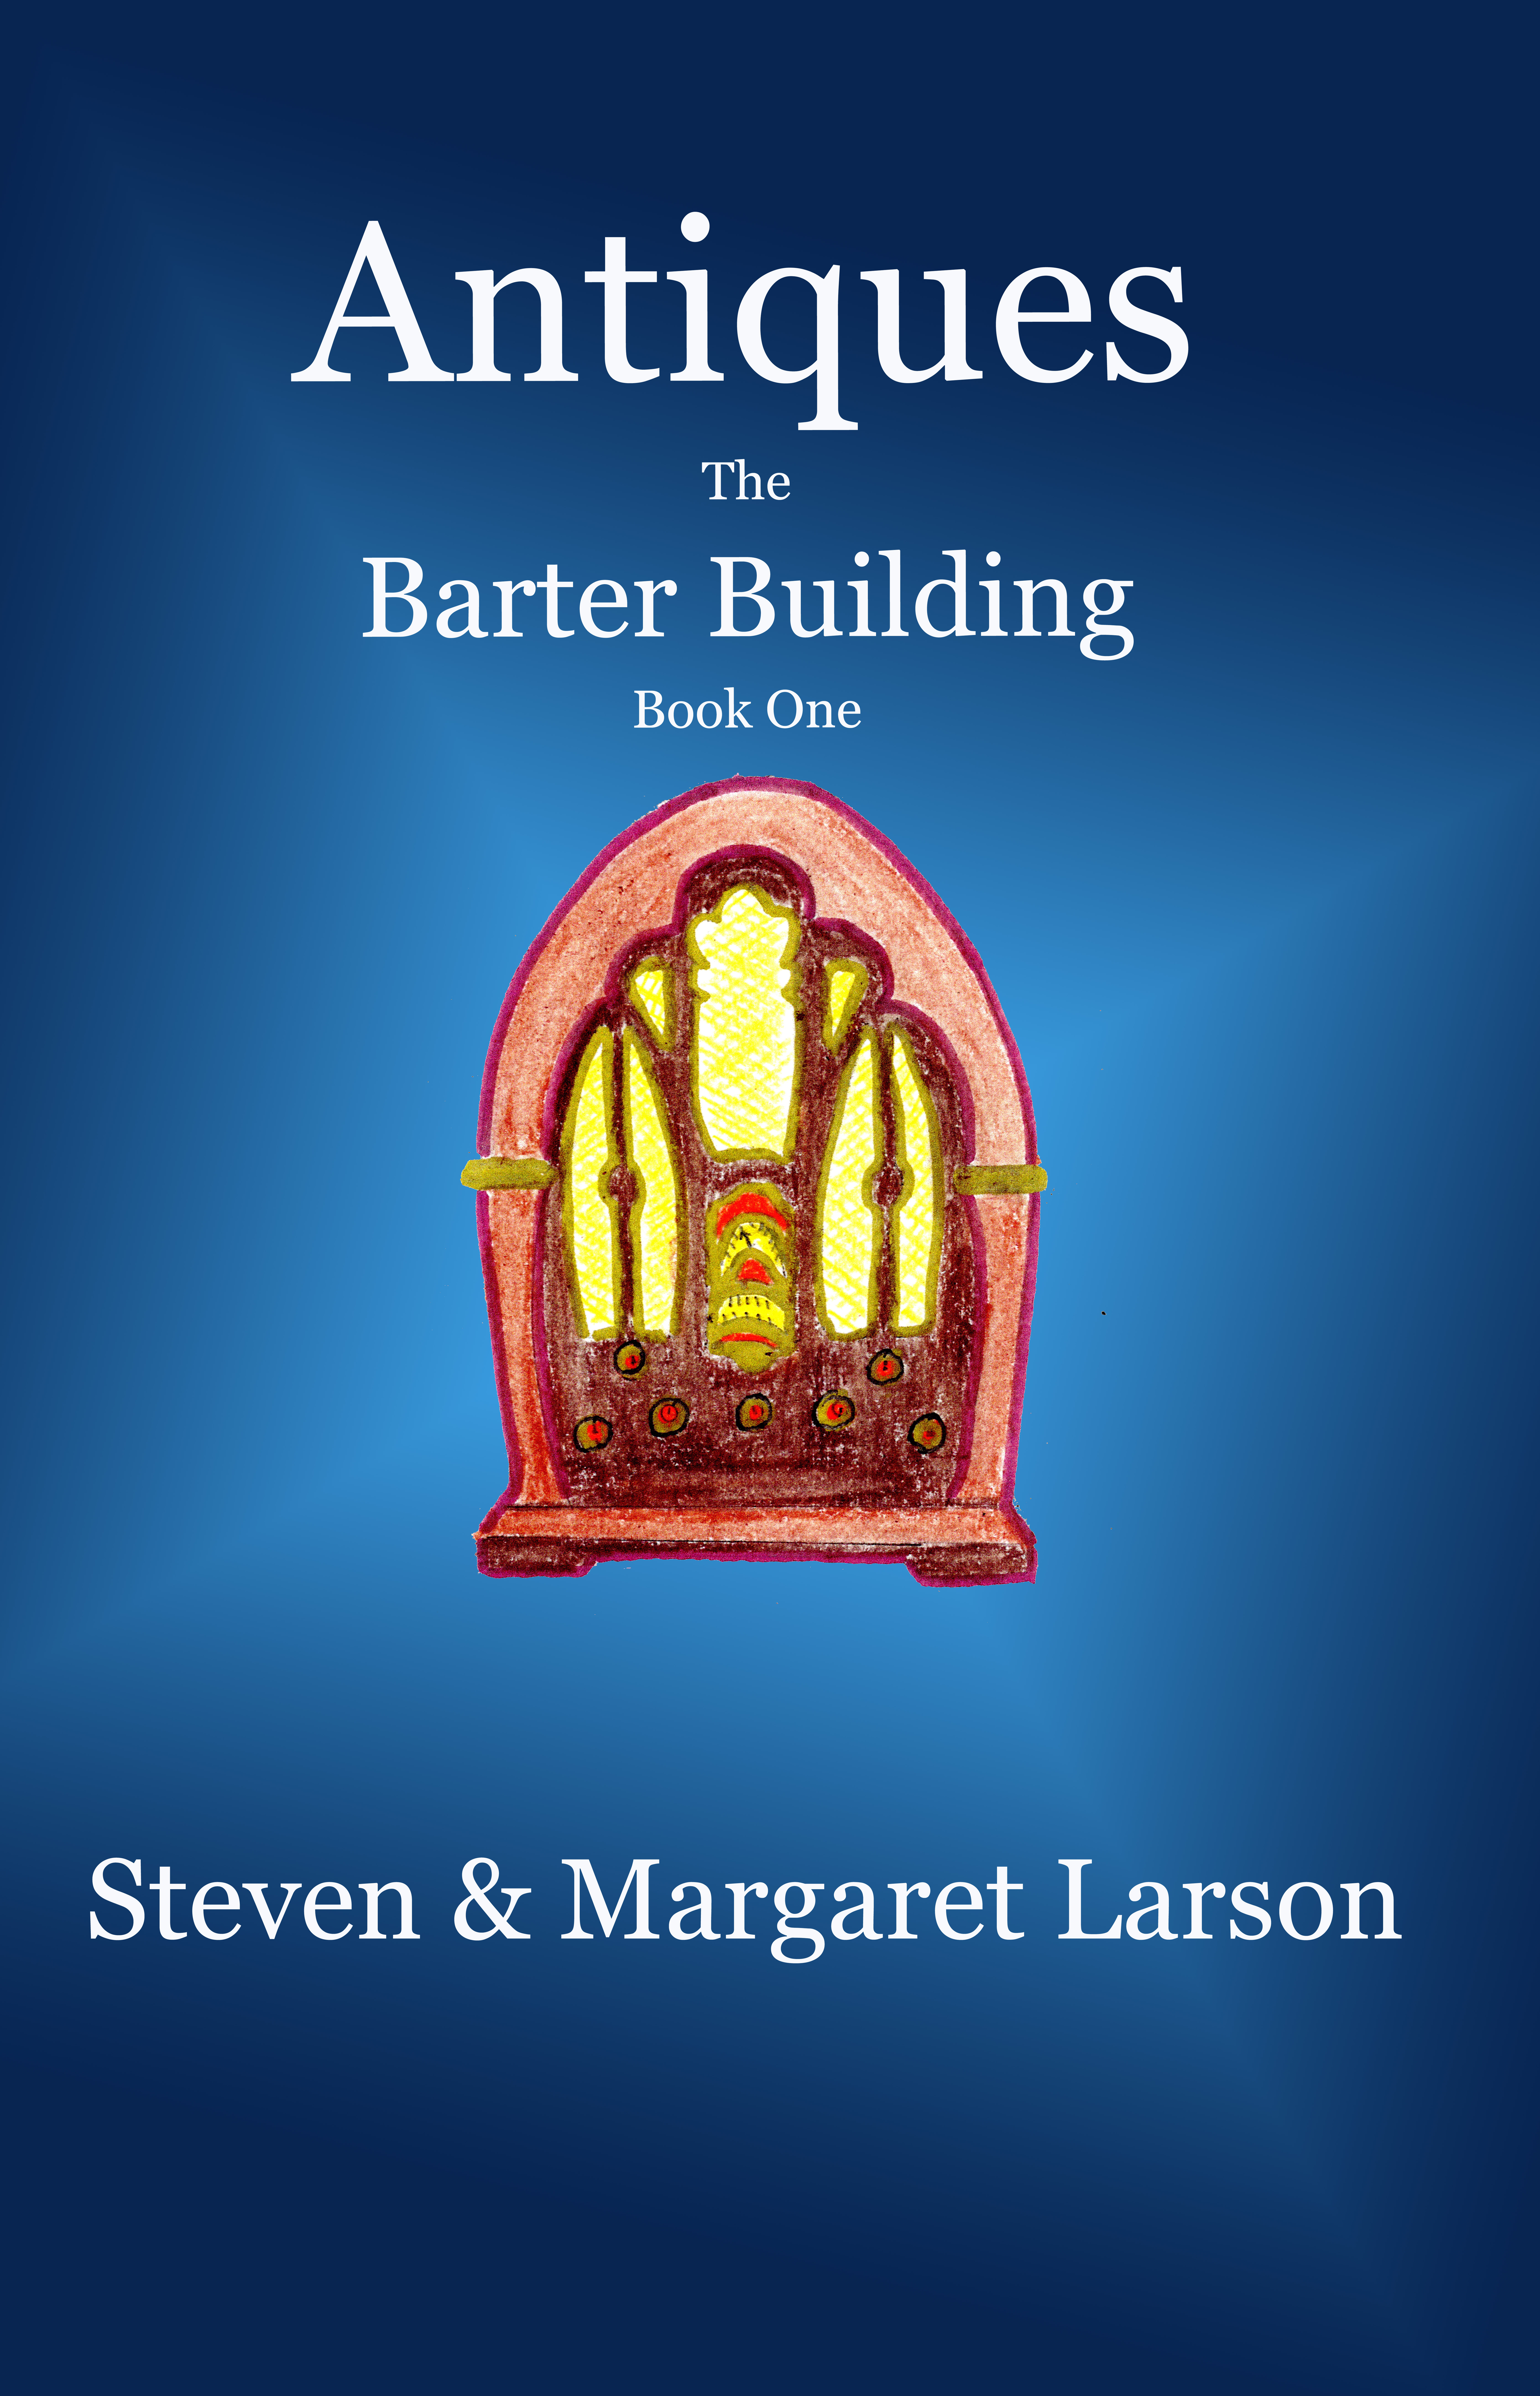 Antiques  The Barter Building Book One By Steven & Margaret Larson